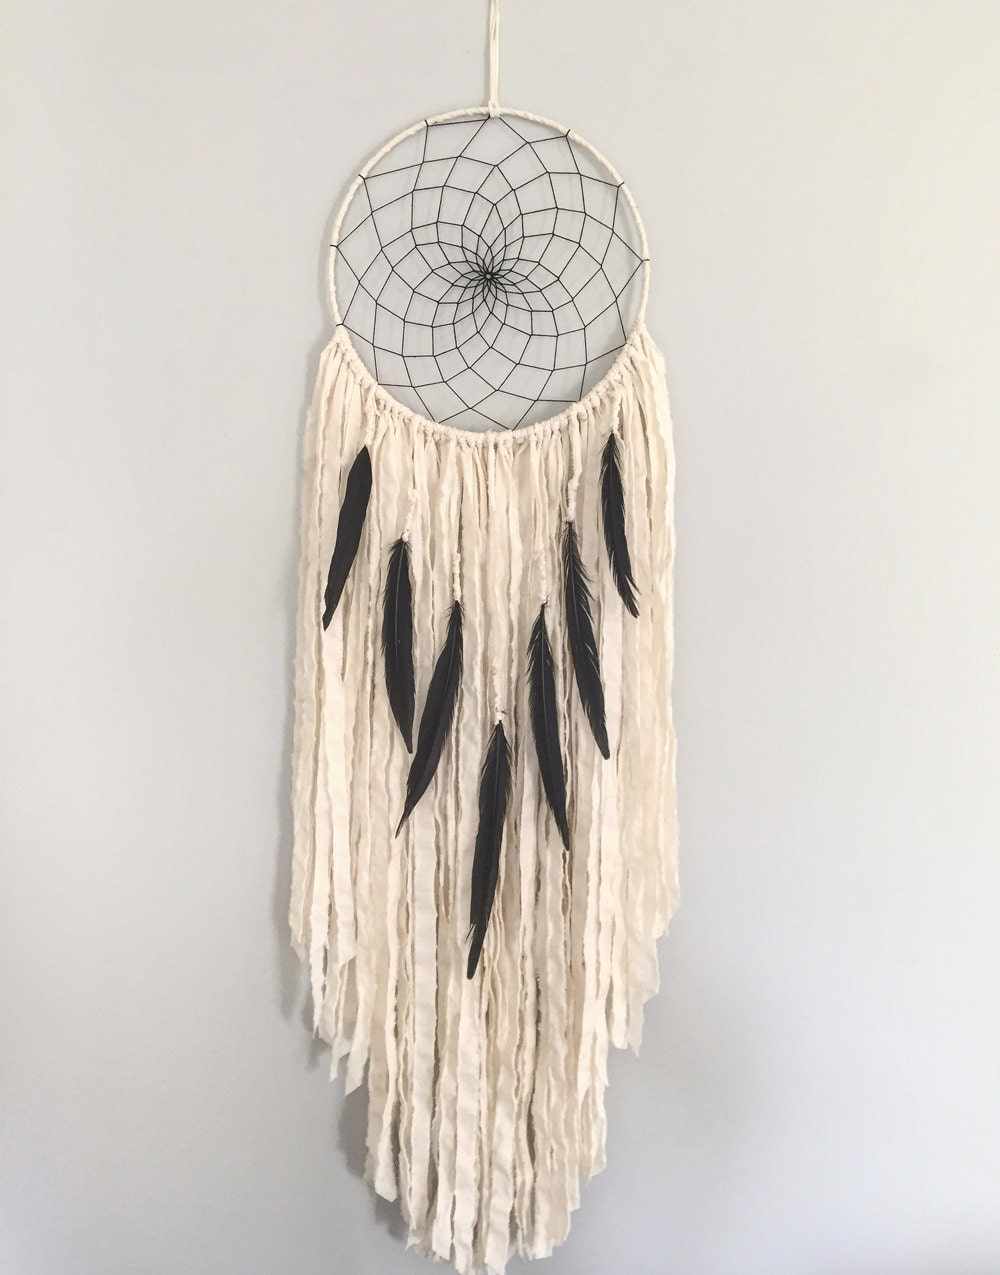 Dream Catcher Without Feathers Large Dream Catcher Large White Dream Catcher with Black 15